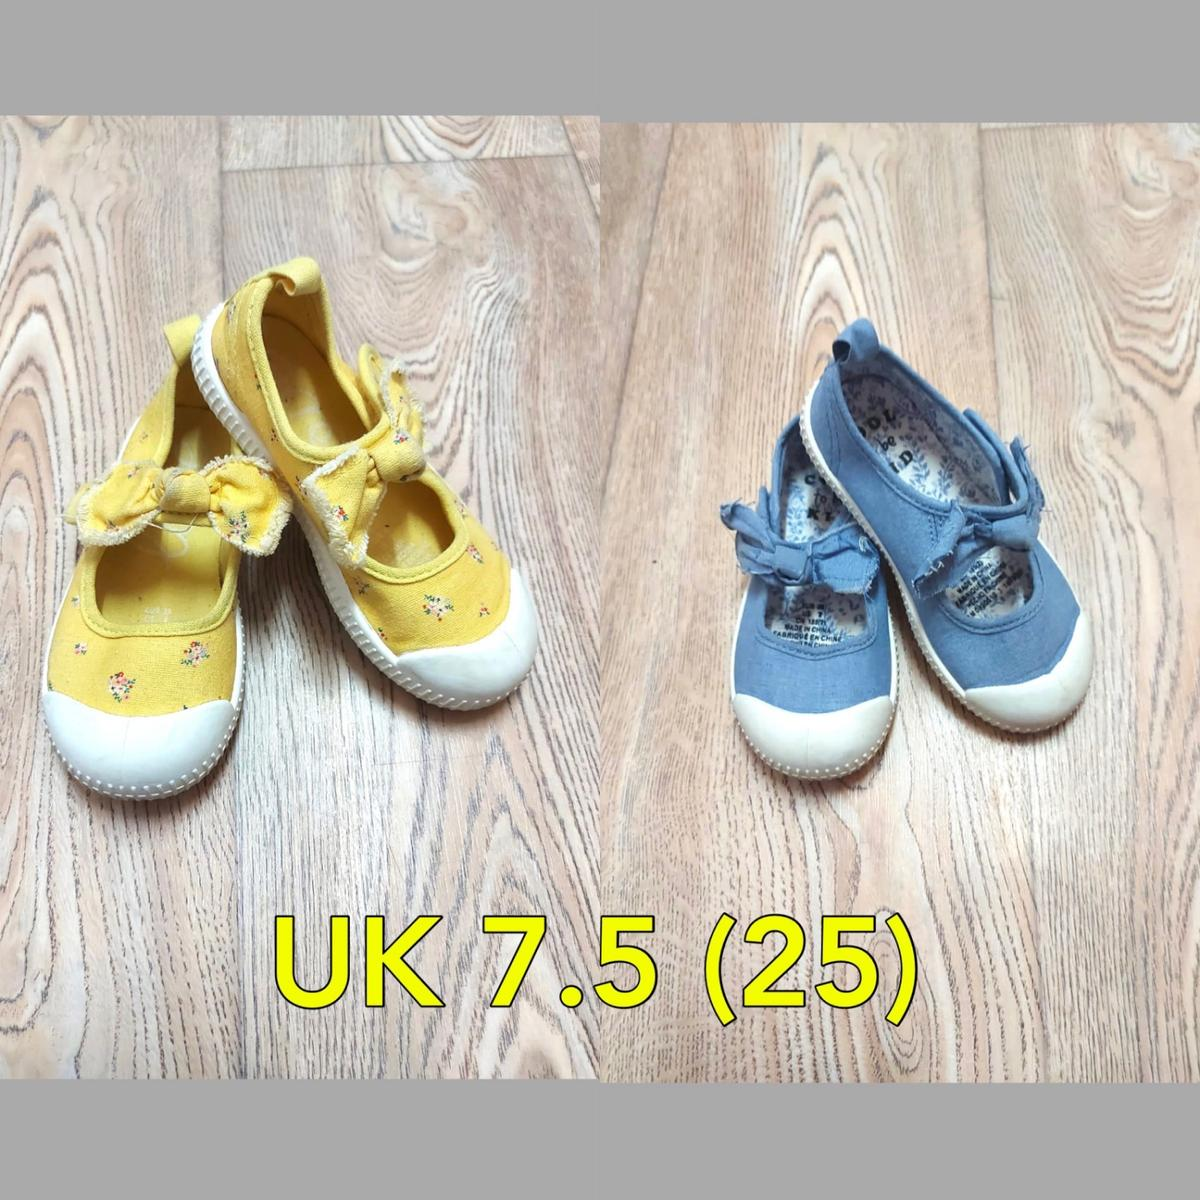 Brand - H&M Sizes - 7.5 (25)  Blue + Yellow canvas shoes  In good used condition. Well looked after.